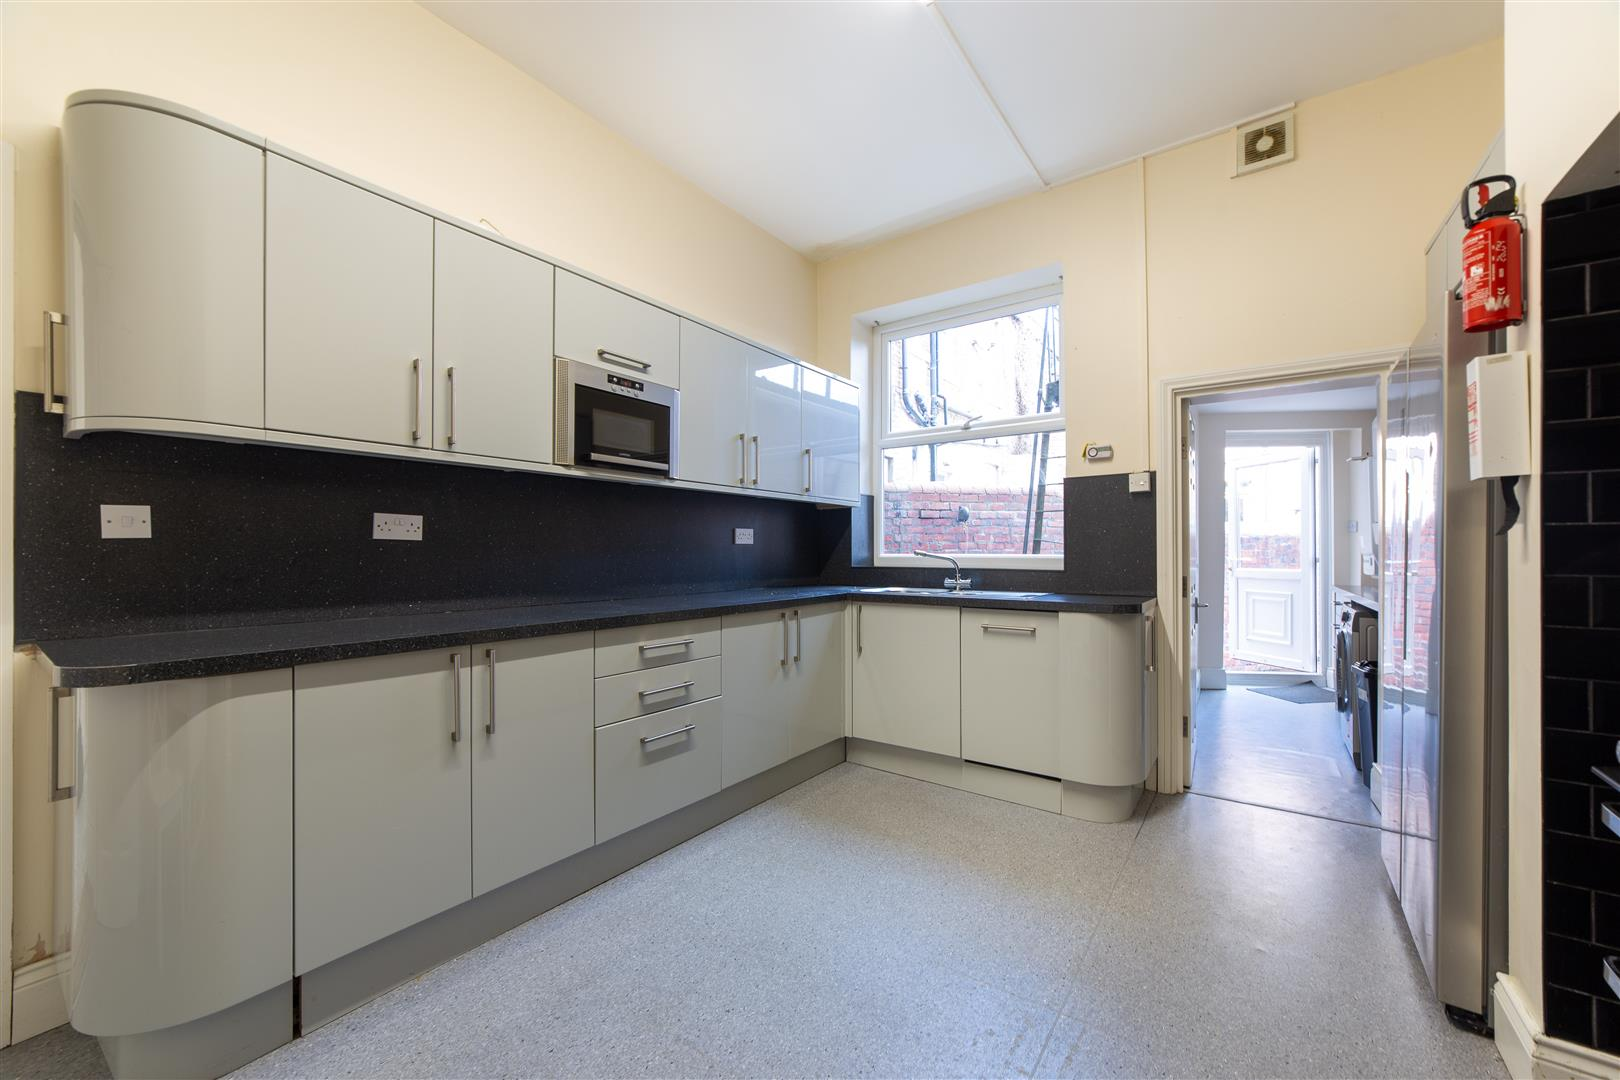 8 bed terraced house to rent in Jesmond, NE2 1JS, NE2